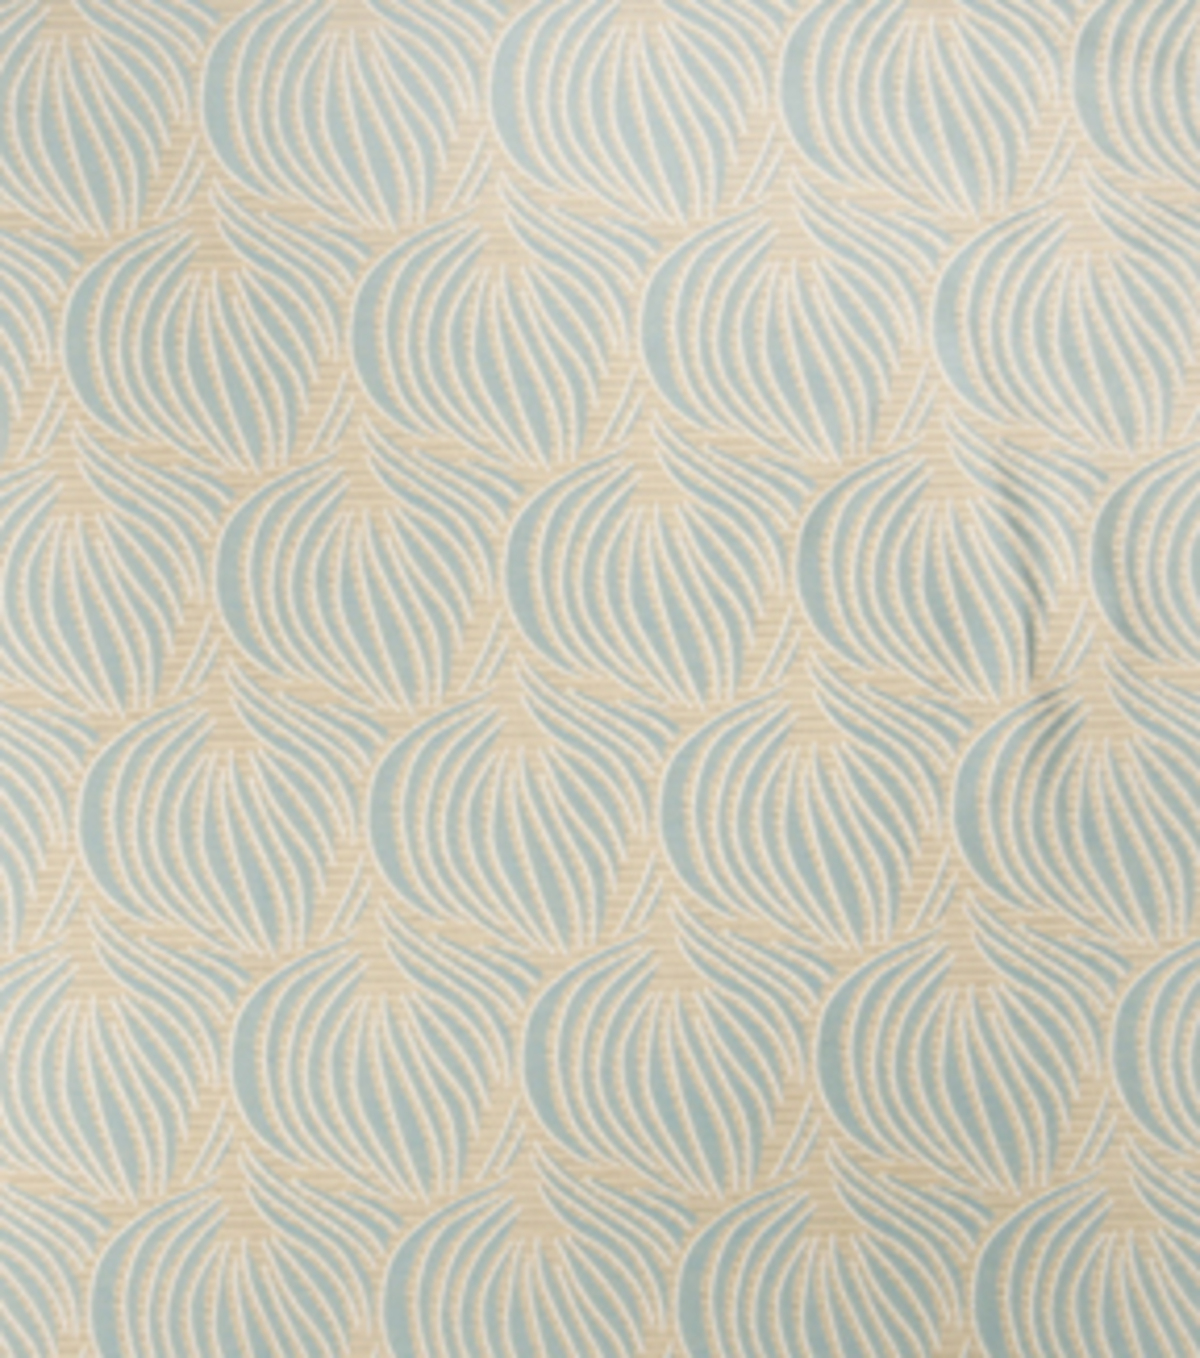 Home Decor 8\u0022x8\u0022 Fabric Swatch-Print Fabric Eaton Square Carly Seamist